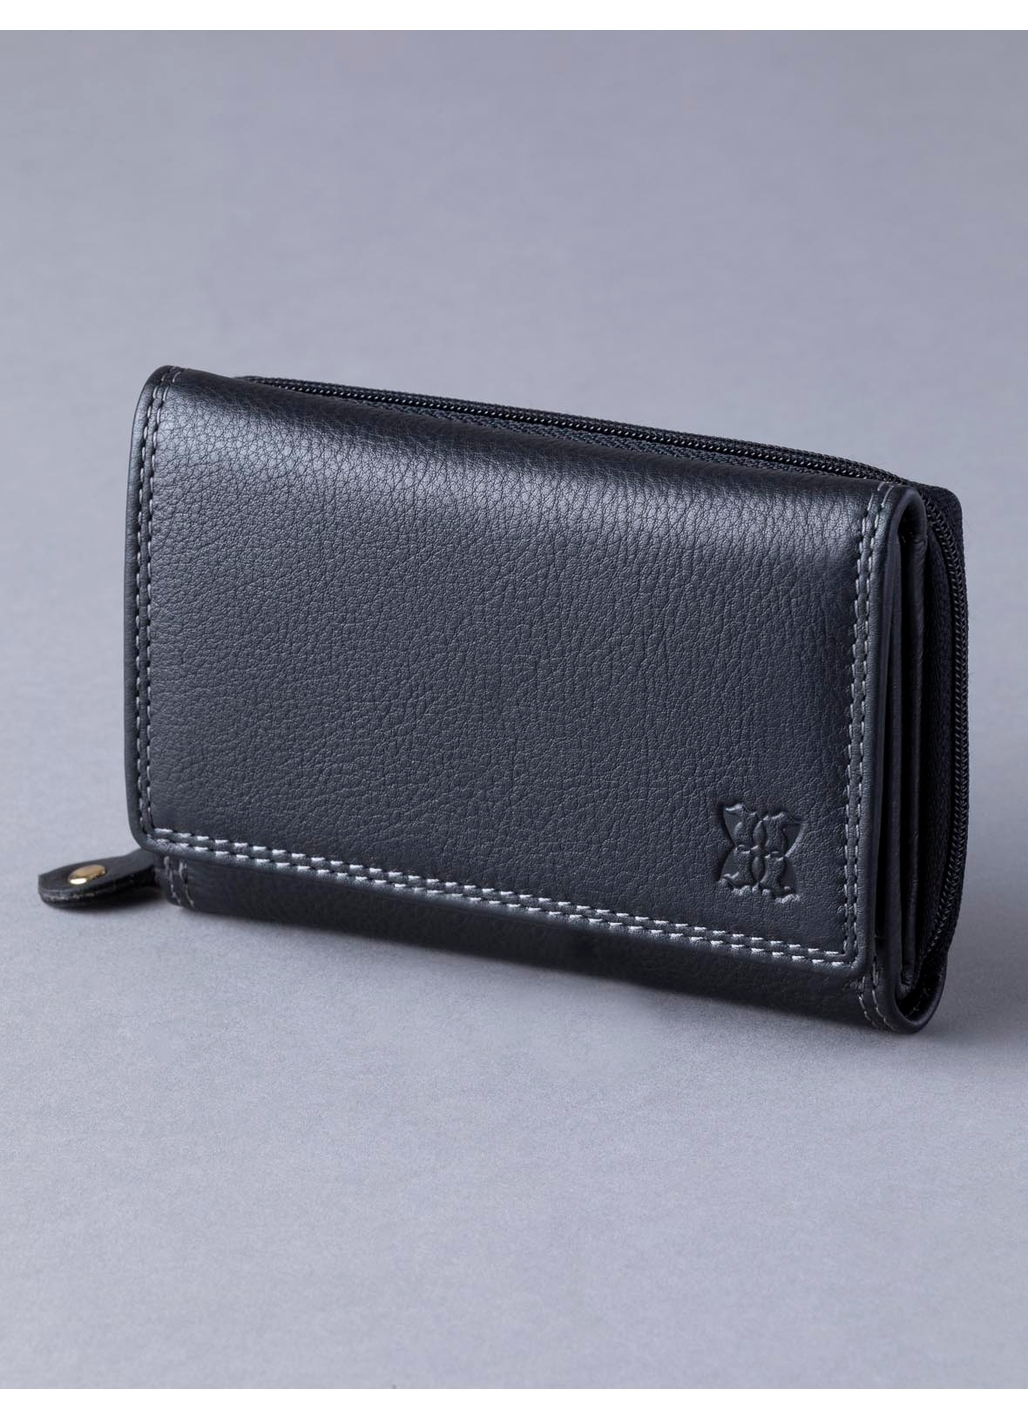 12.5cm Leather Purse in Black